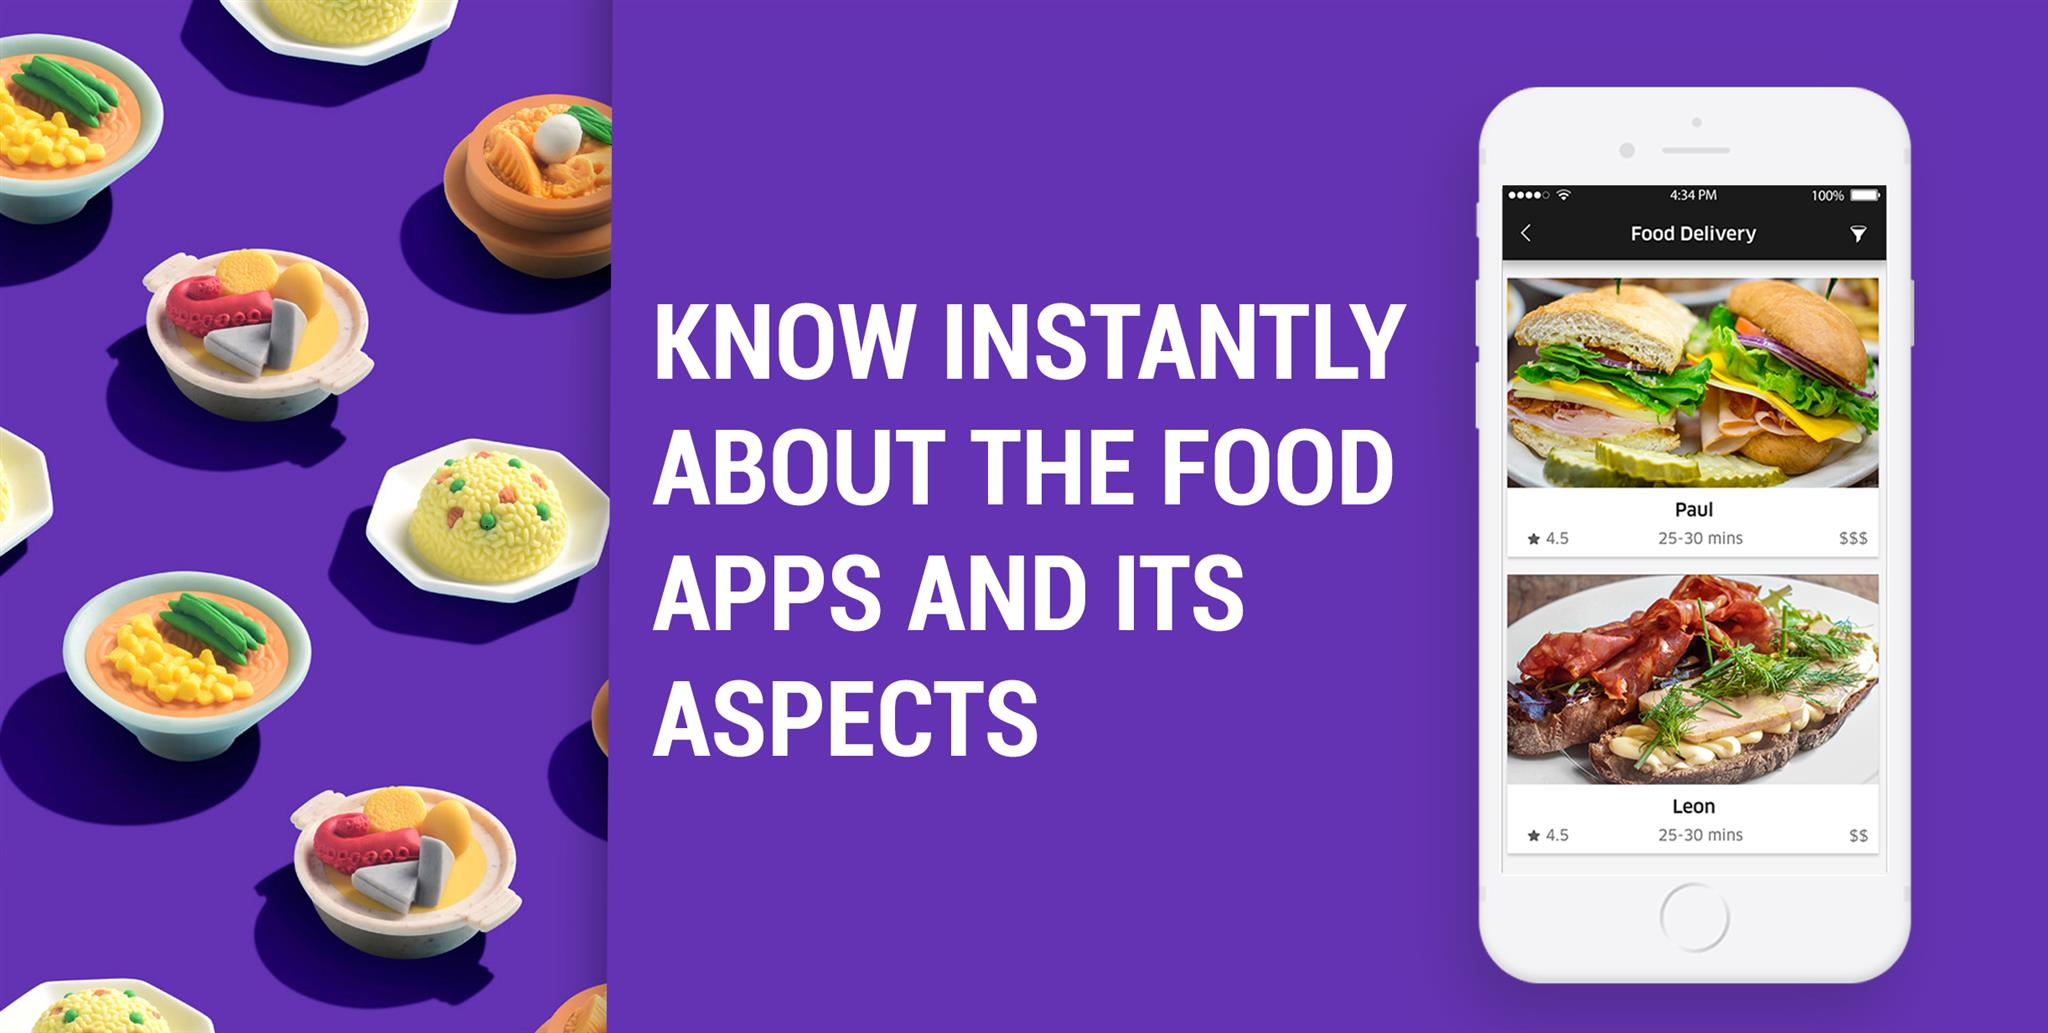 Have A Quick Look At All The Aspects Of Food Apps